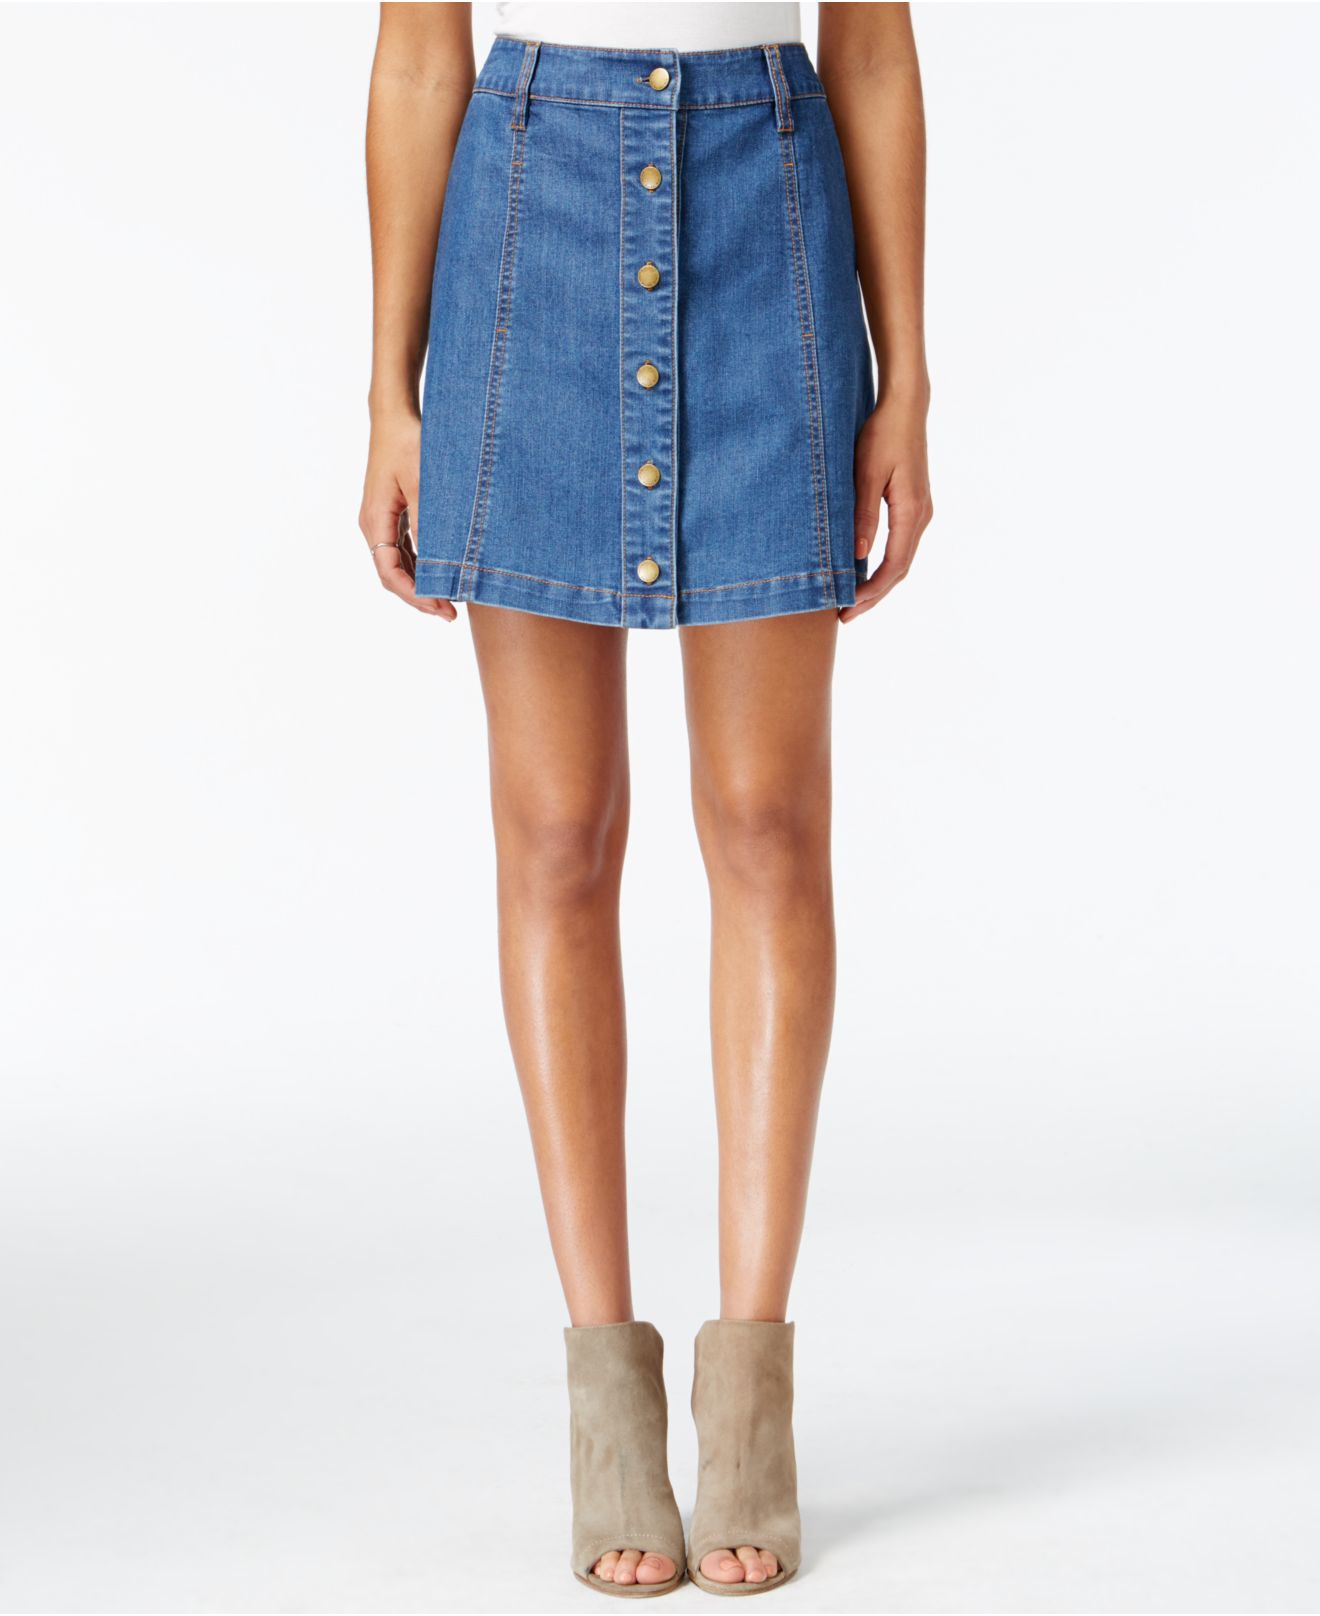 Rachel rachel roy Button-front Denim Skirt in Blue | Lyst